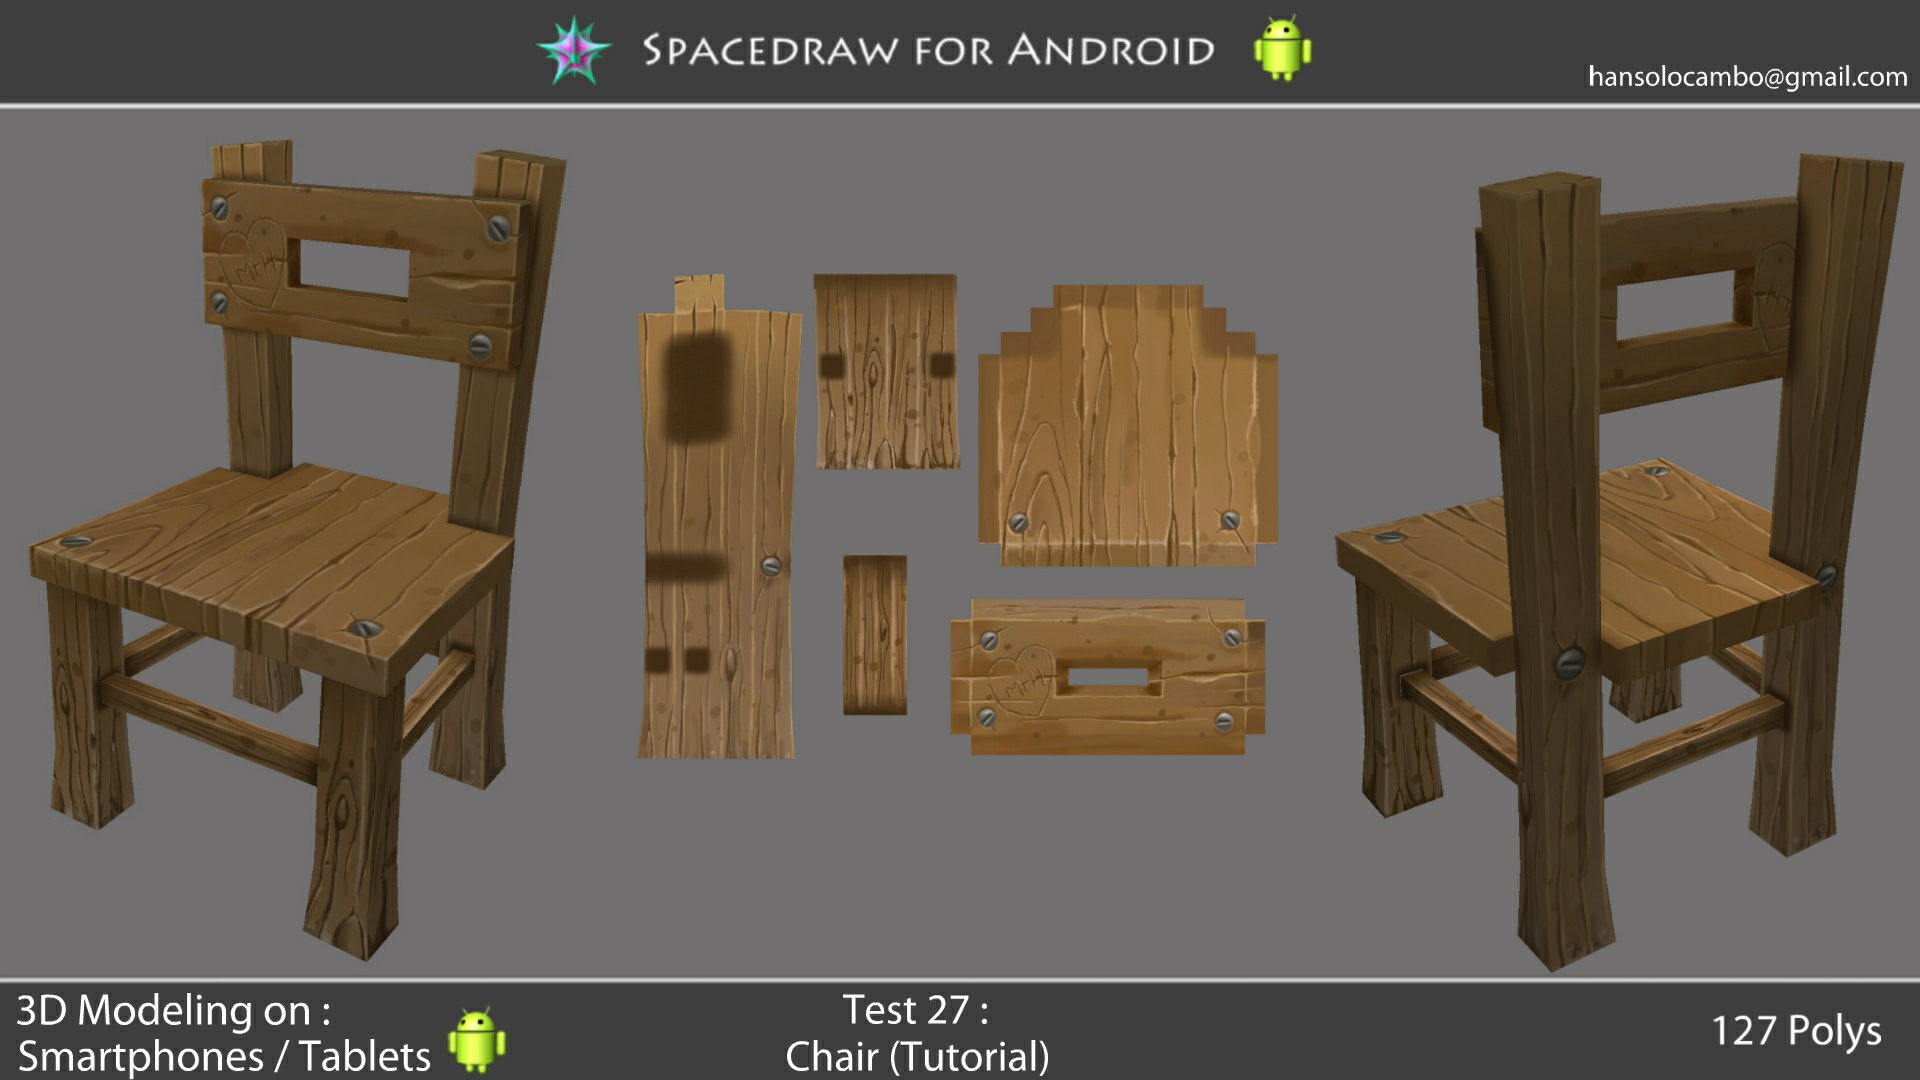 Spacedraw%2027-ChairTutorial.jpg